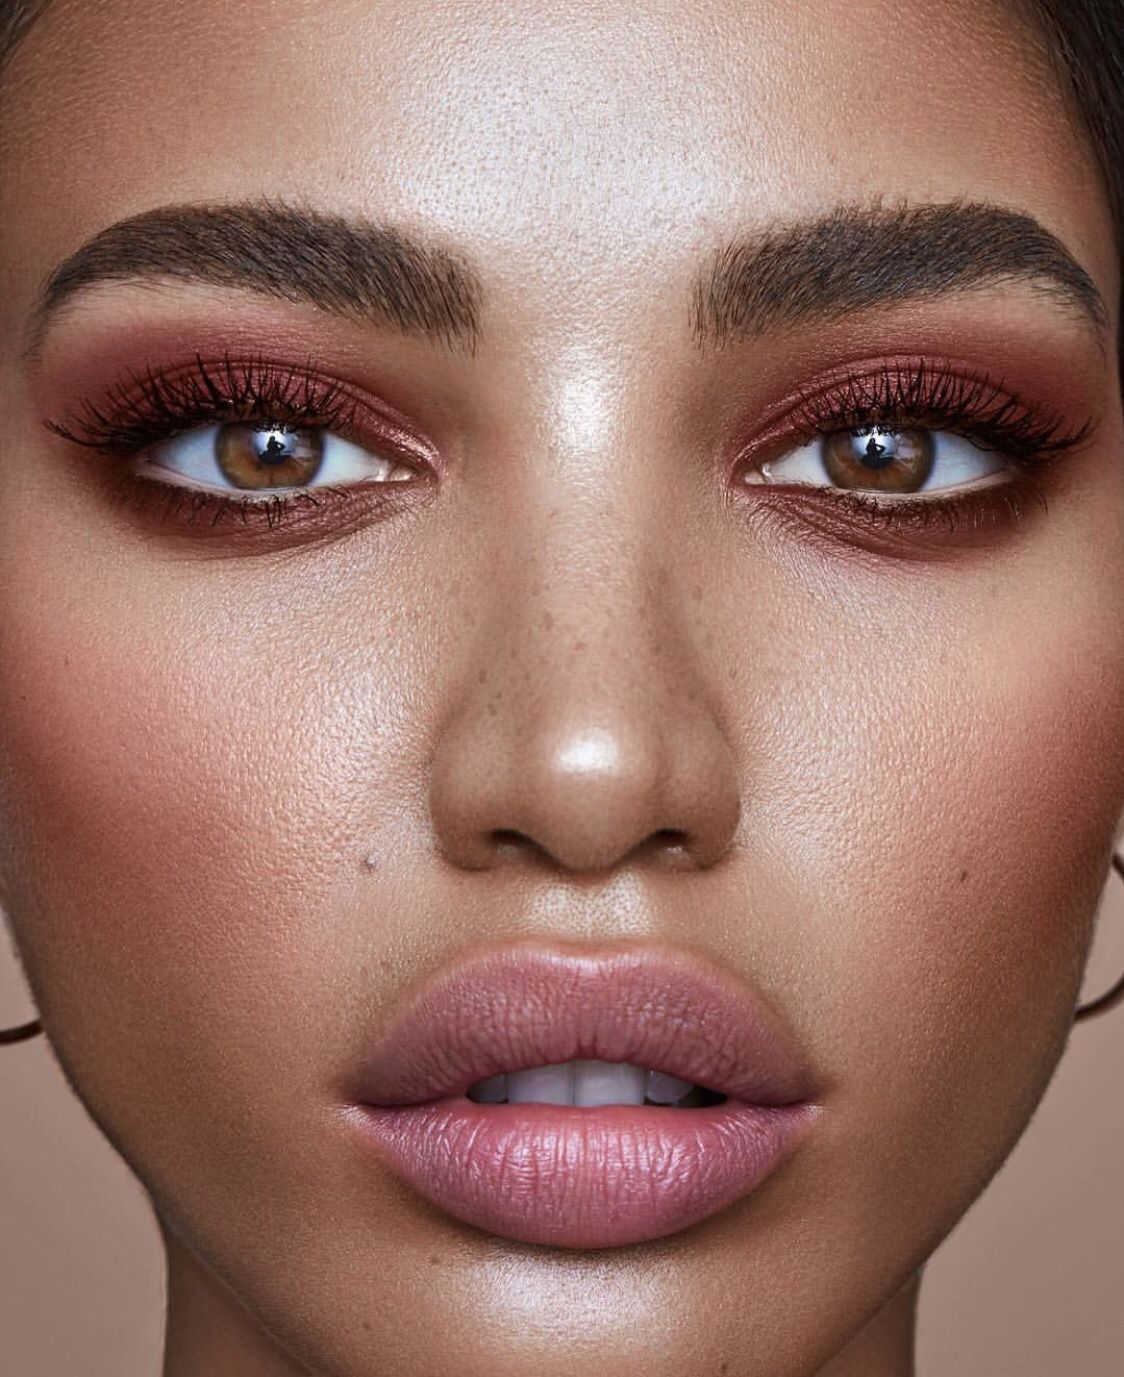 Rose Gold Makeup Looks Easy Fall Makeup Looks Simple Fall Makeup Looks Gold Makeup Looks Rose Gold Makeup Looks Fall Makeup Looks